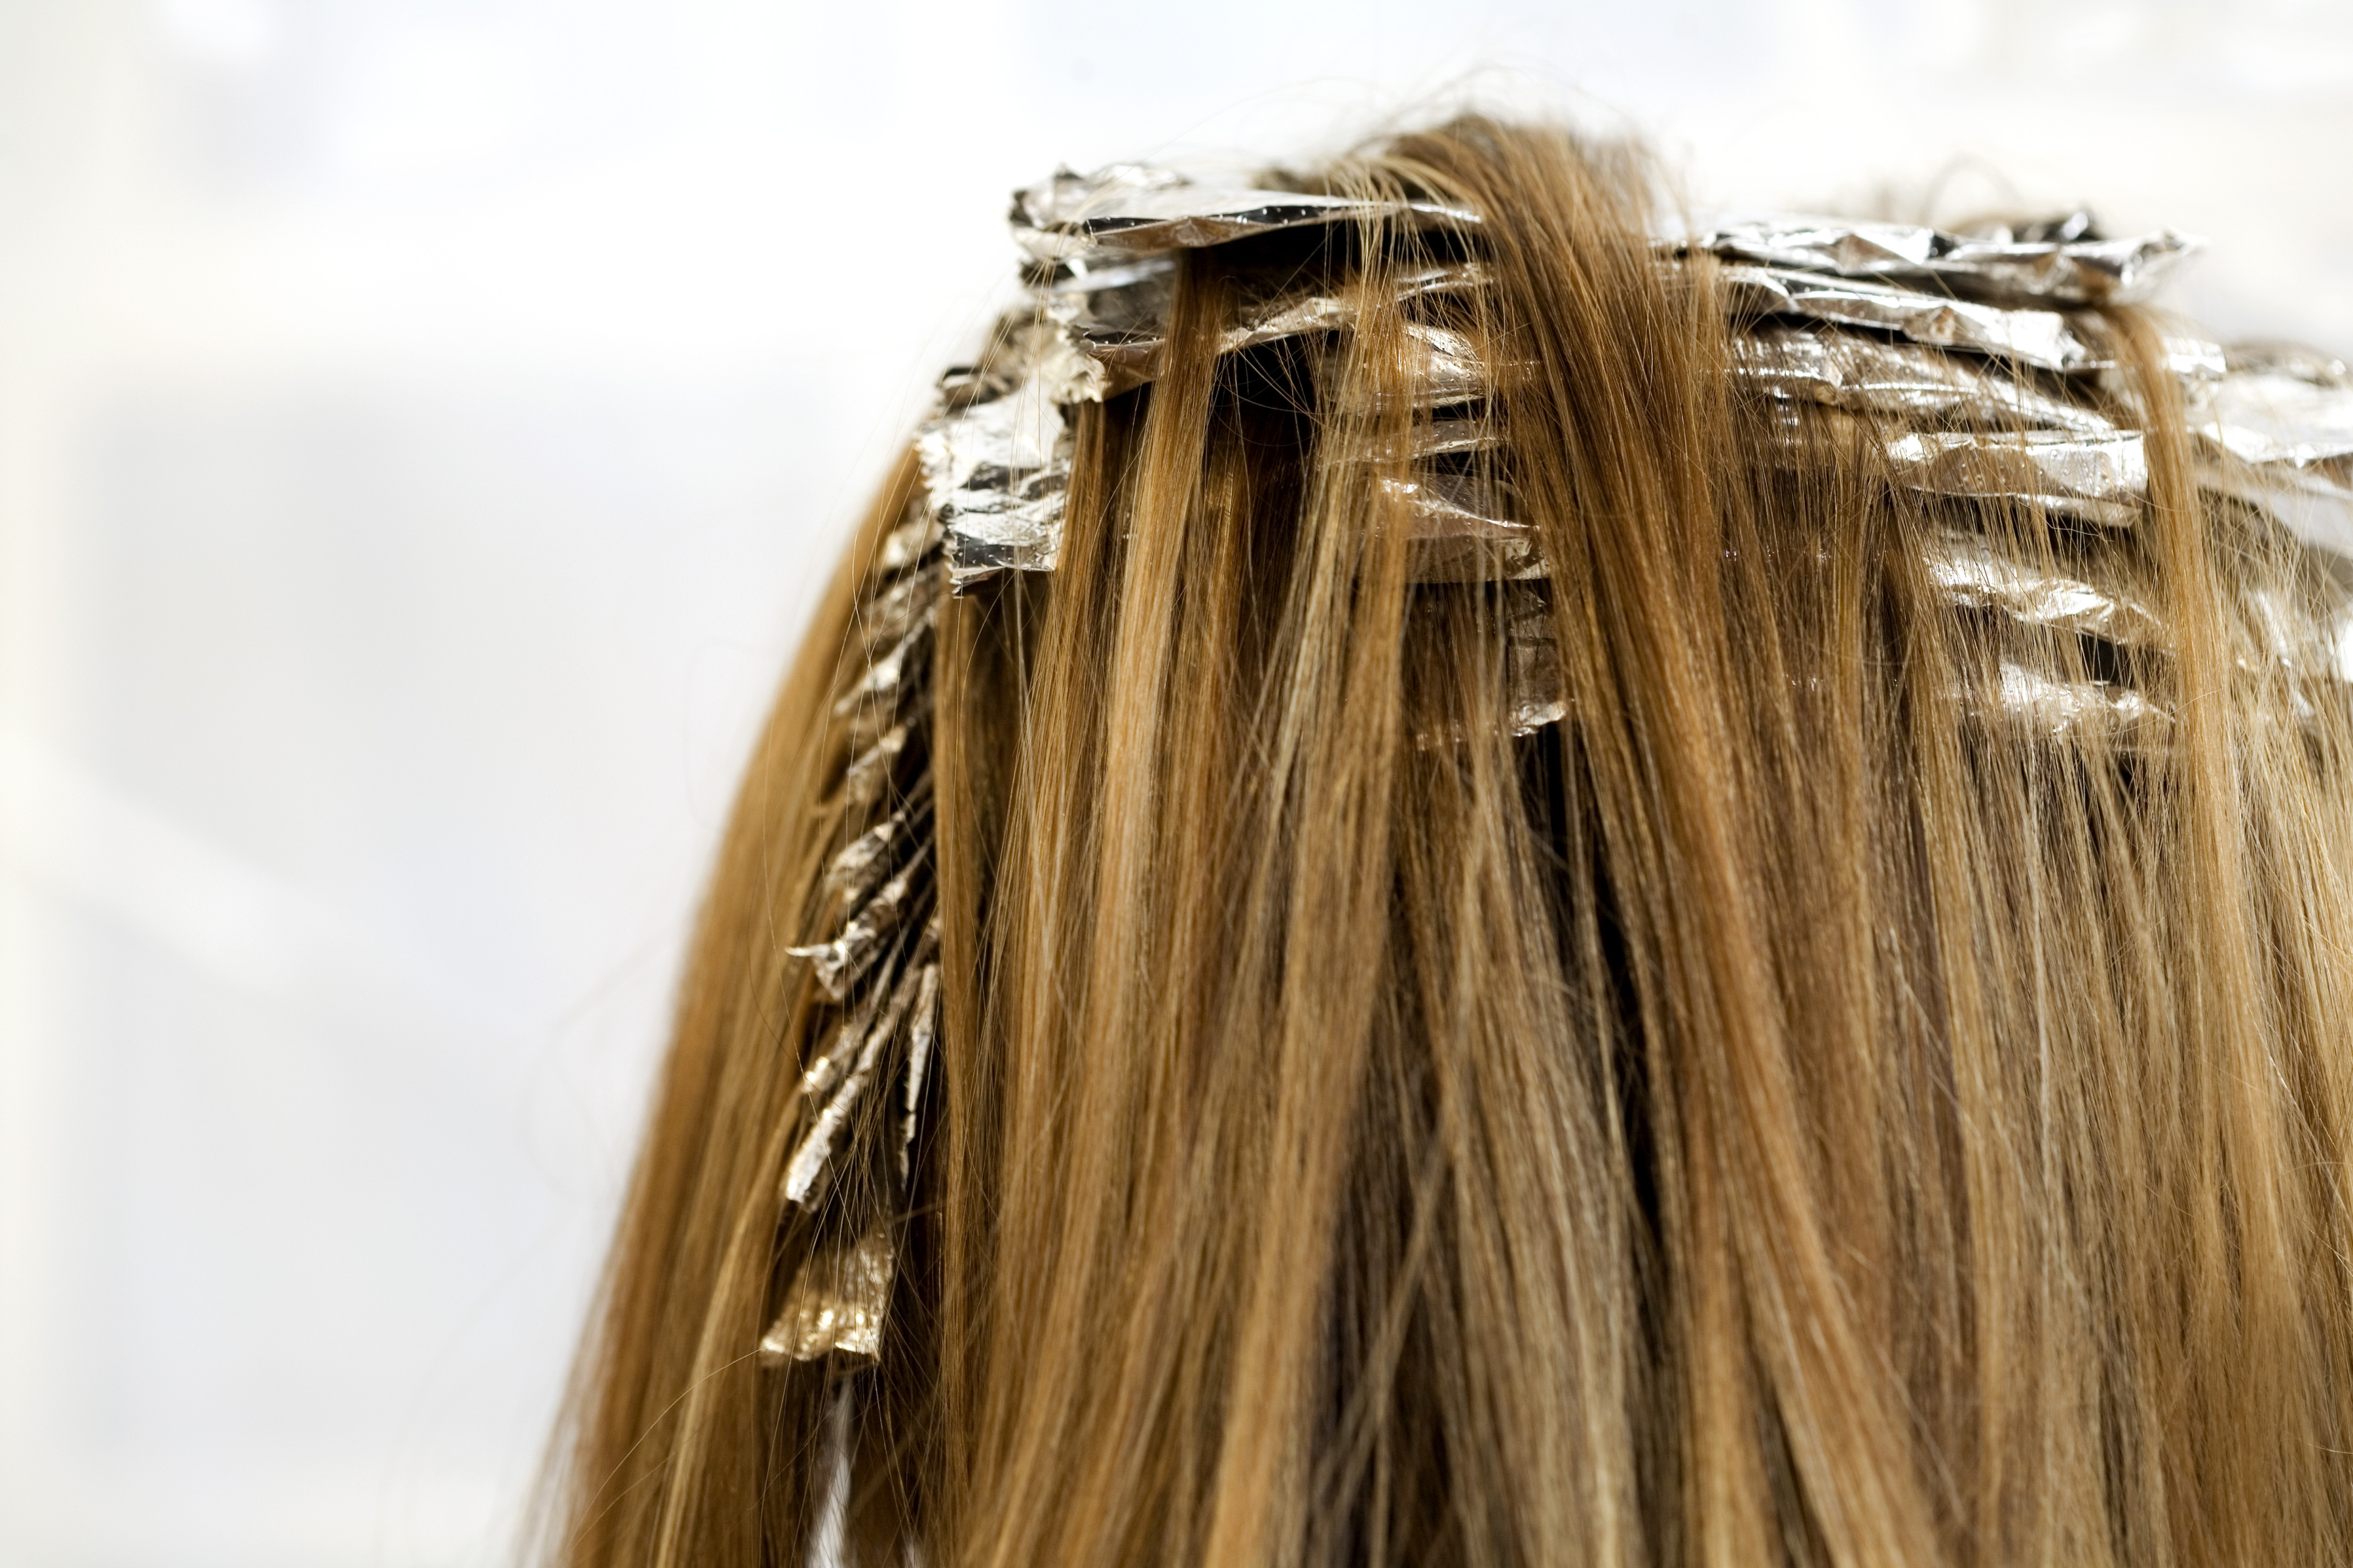 5 Myths About Coloring Your Hair You Seriously Need To Know Aol